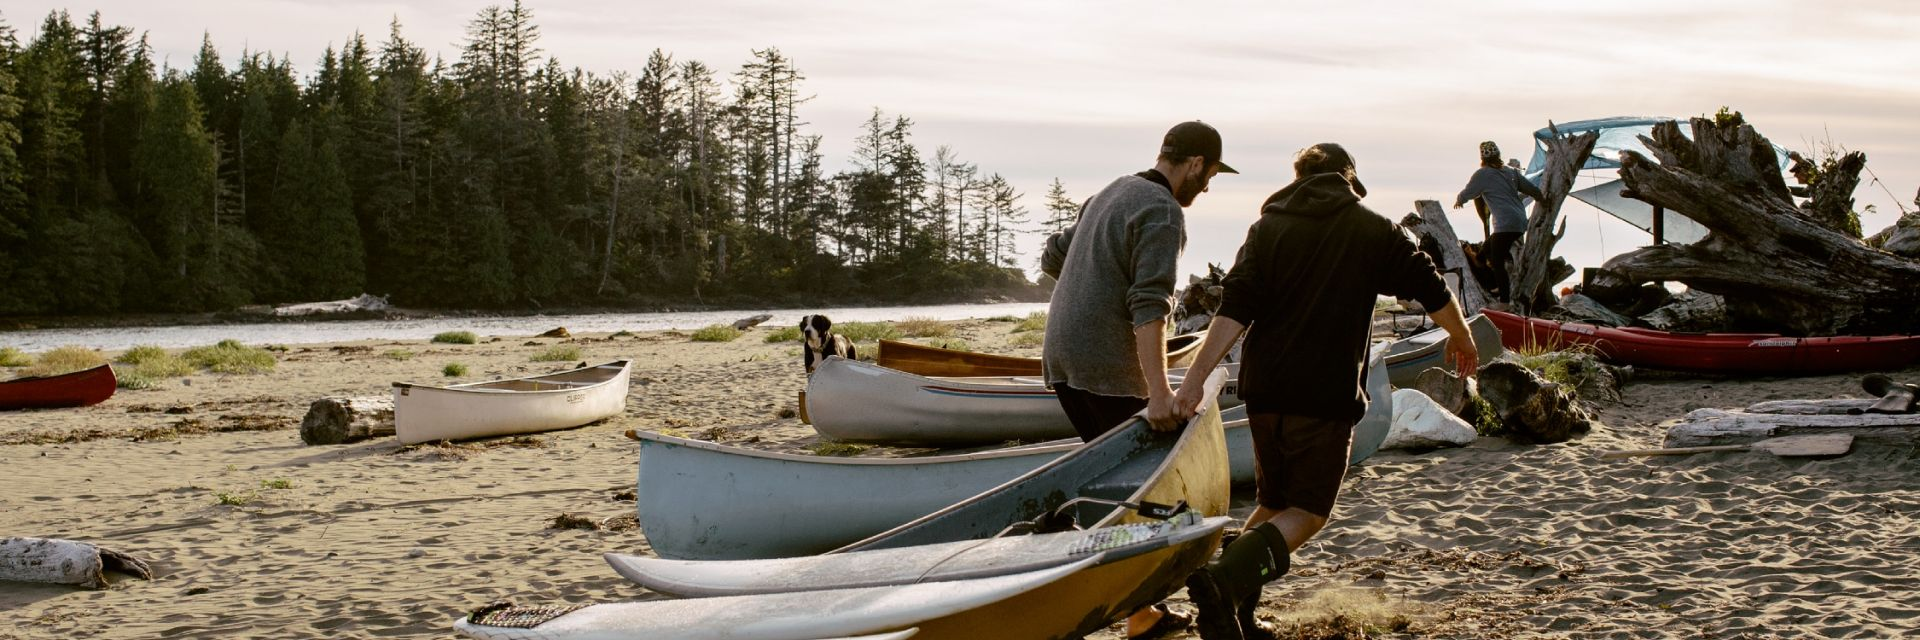 Canoeing in Raft Cove on Vancouver Island